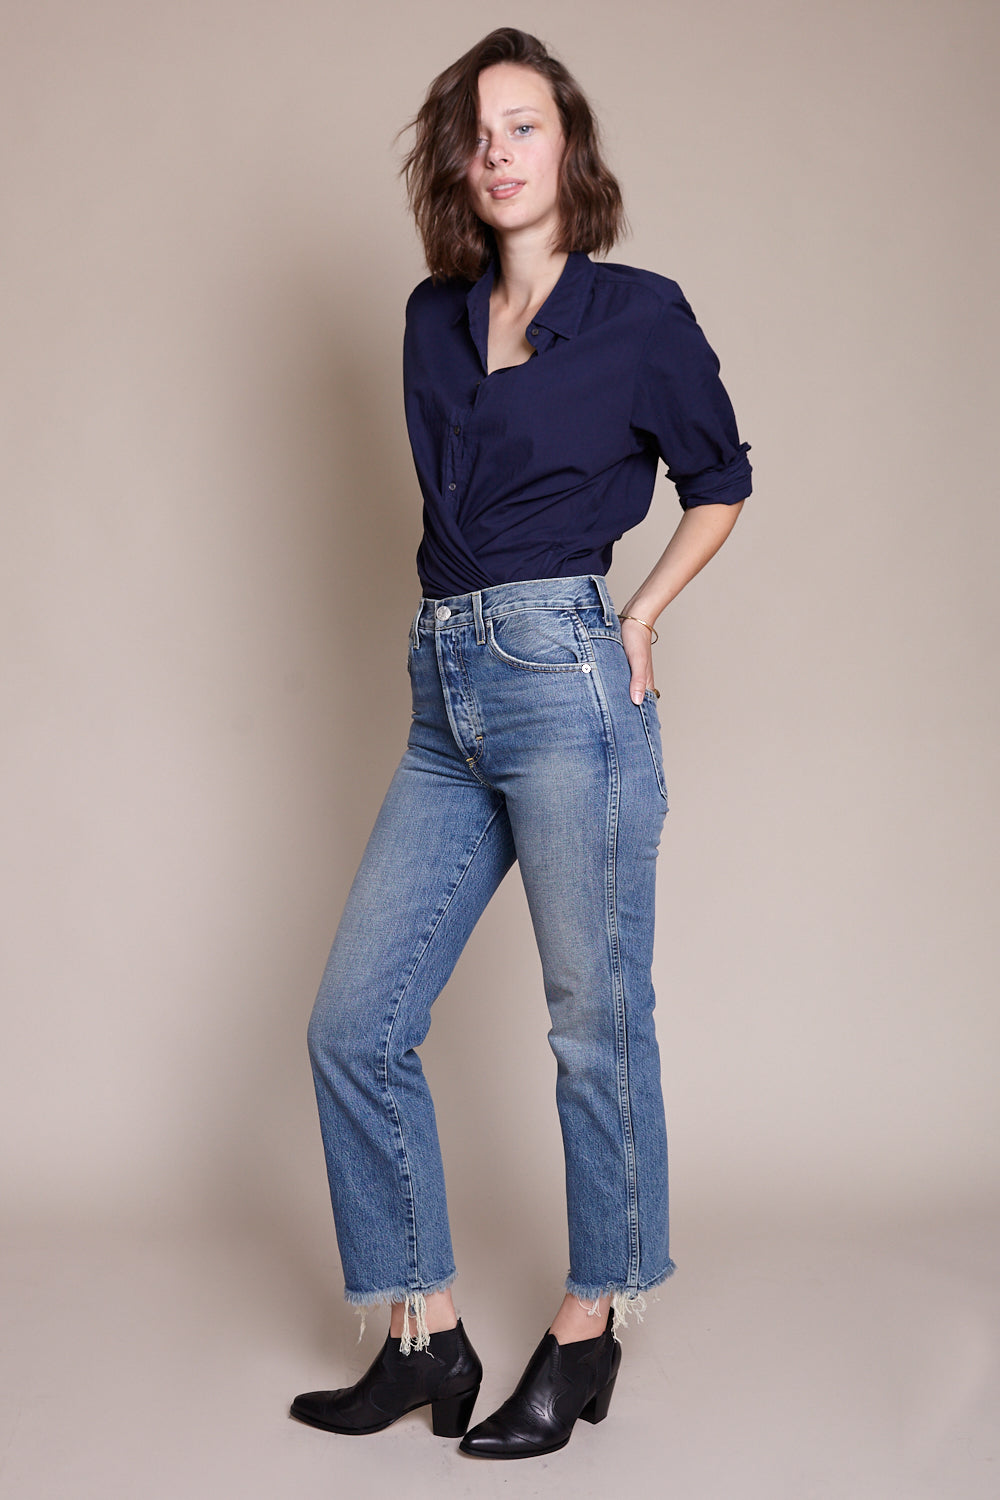 Amo Denim Layla High Rise Straight Leg Jean in Tomcat - Vert & Vogue